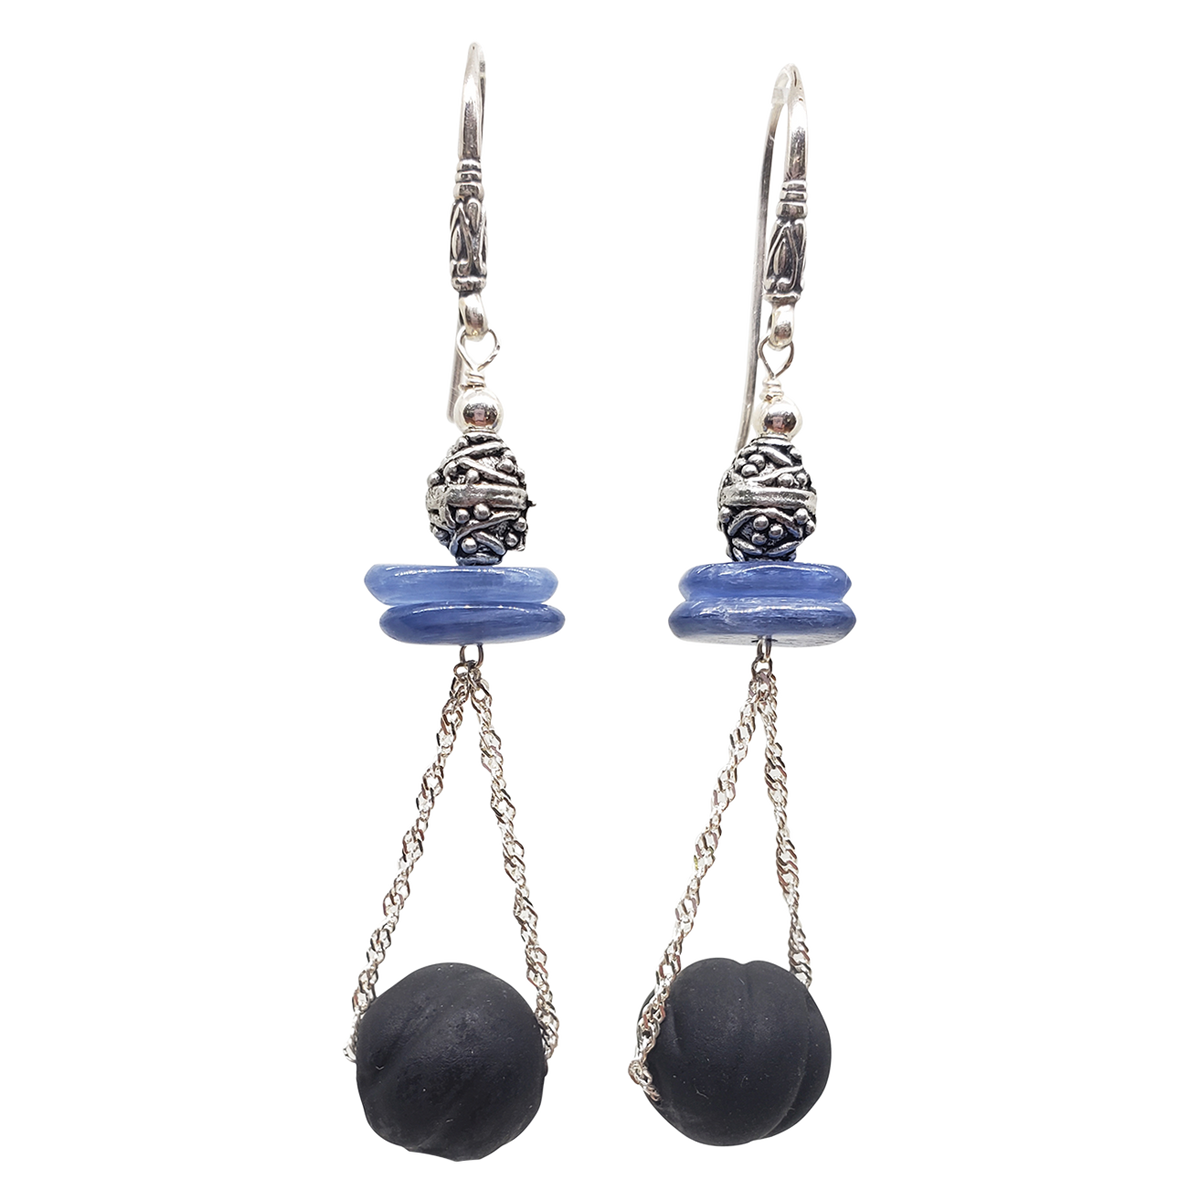 Kyanite Earrings - Sterling Chain Drop